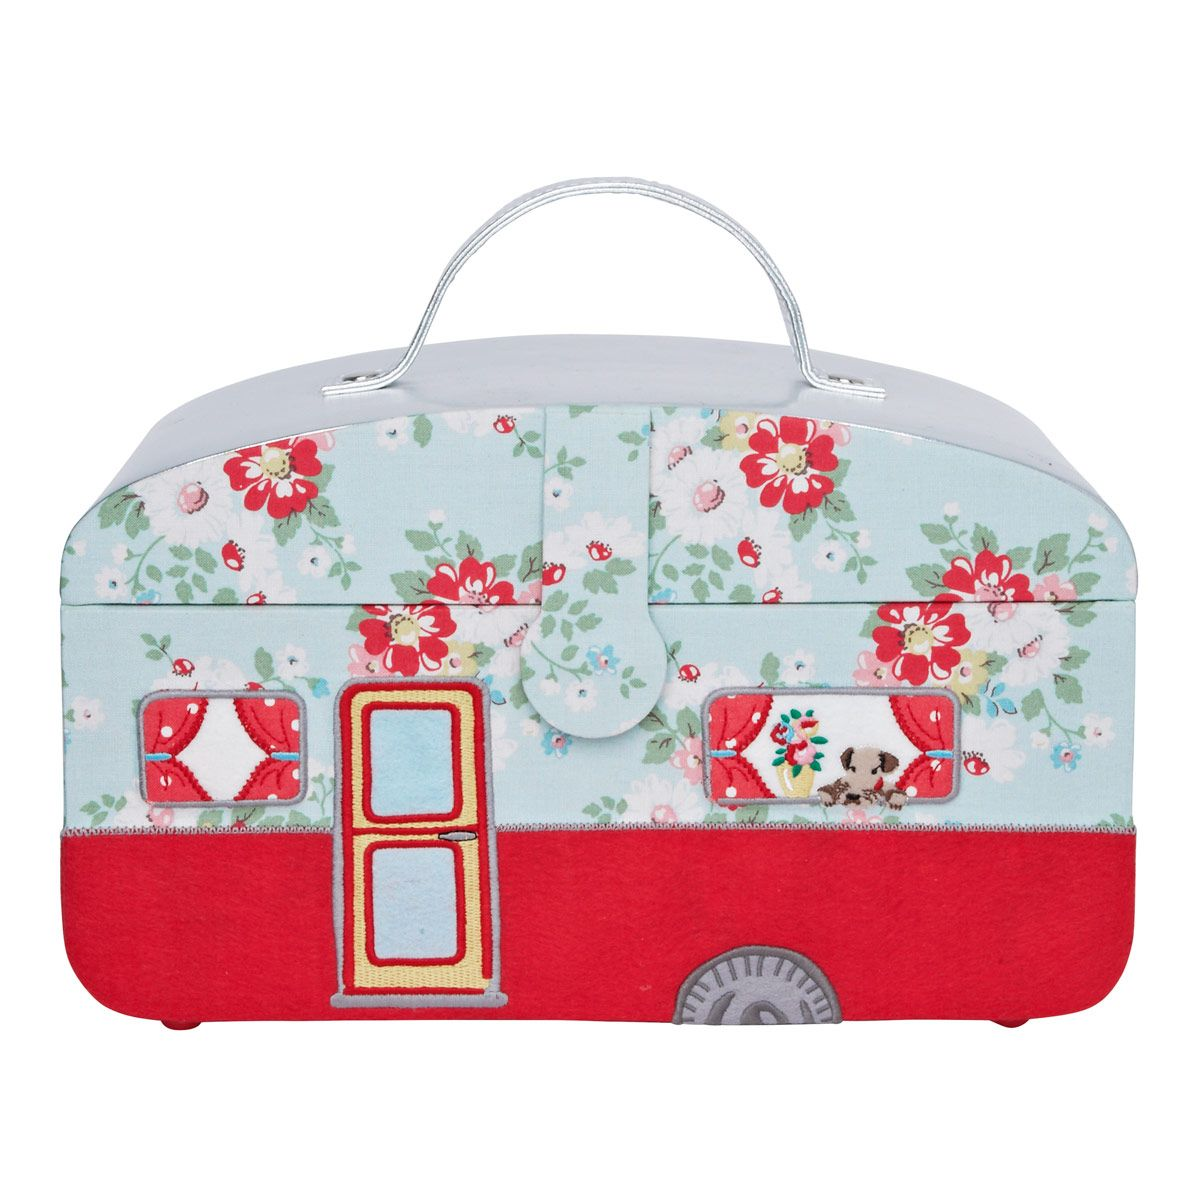 Knitting Sewing Crafts Bright Pop Caravan Sewing Box Cathkidston Oooh I Could Use This For All My Synchro Sewing Box Vintage Camper Cath Kidston